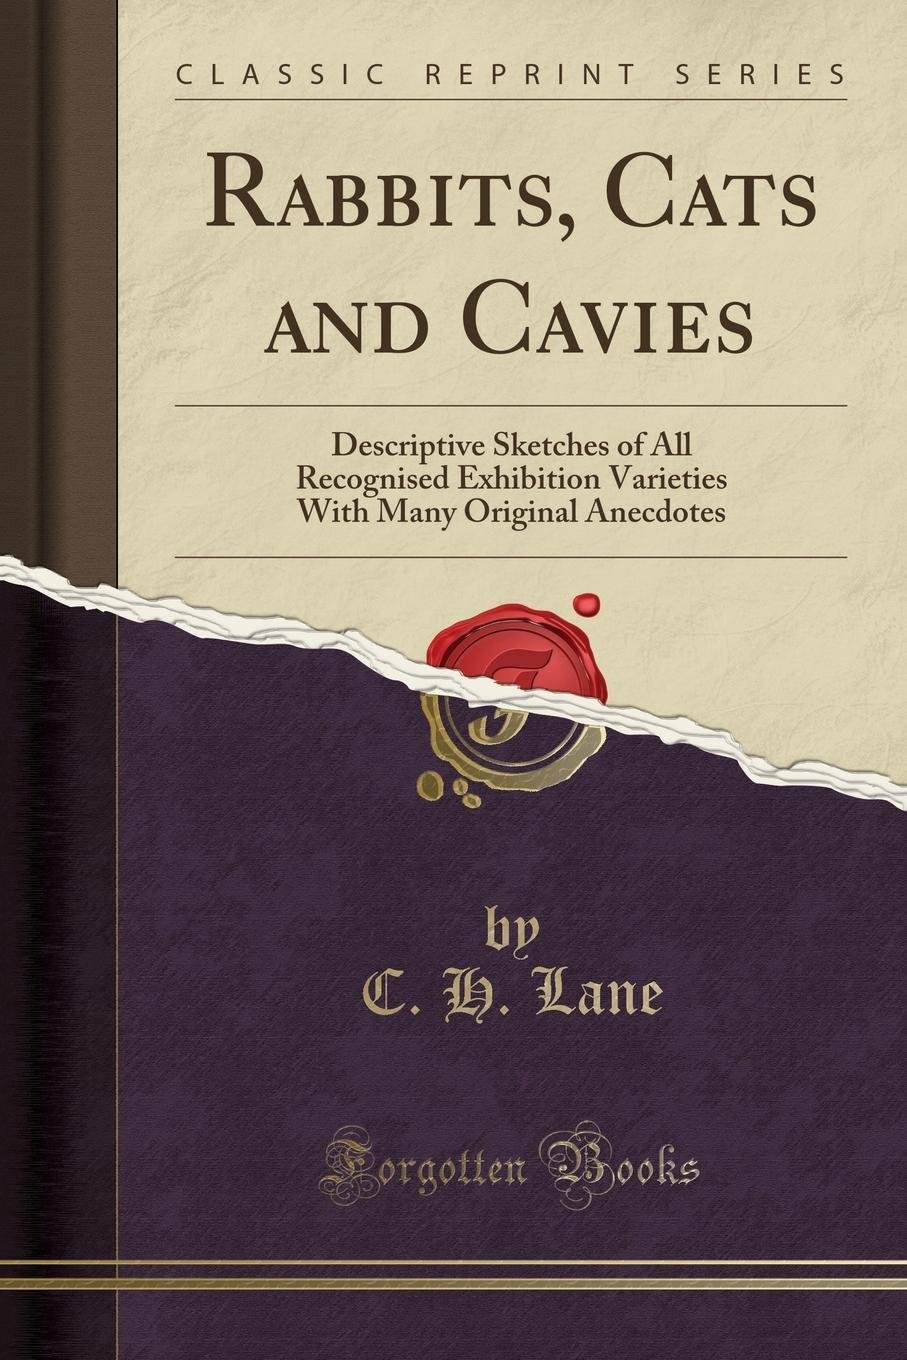 Download Rabbits, Cats and Cavies: Descriptive Sketches of All Recognised Exhibition Varieties With Many Original Anecdotes (Classic Reprint) PDF